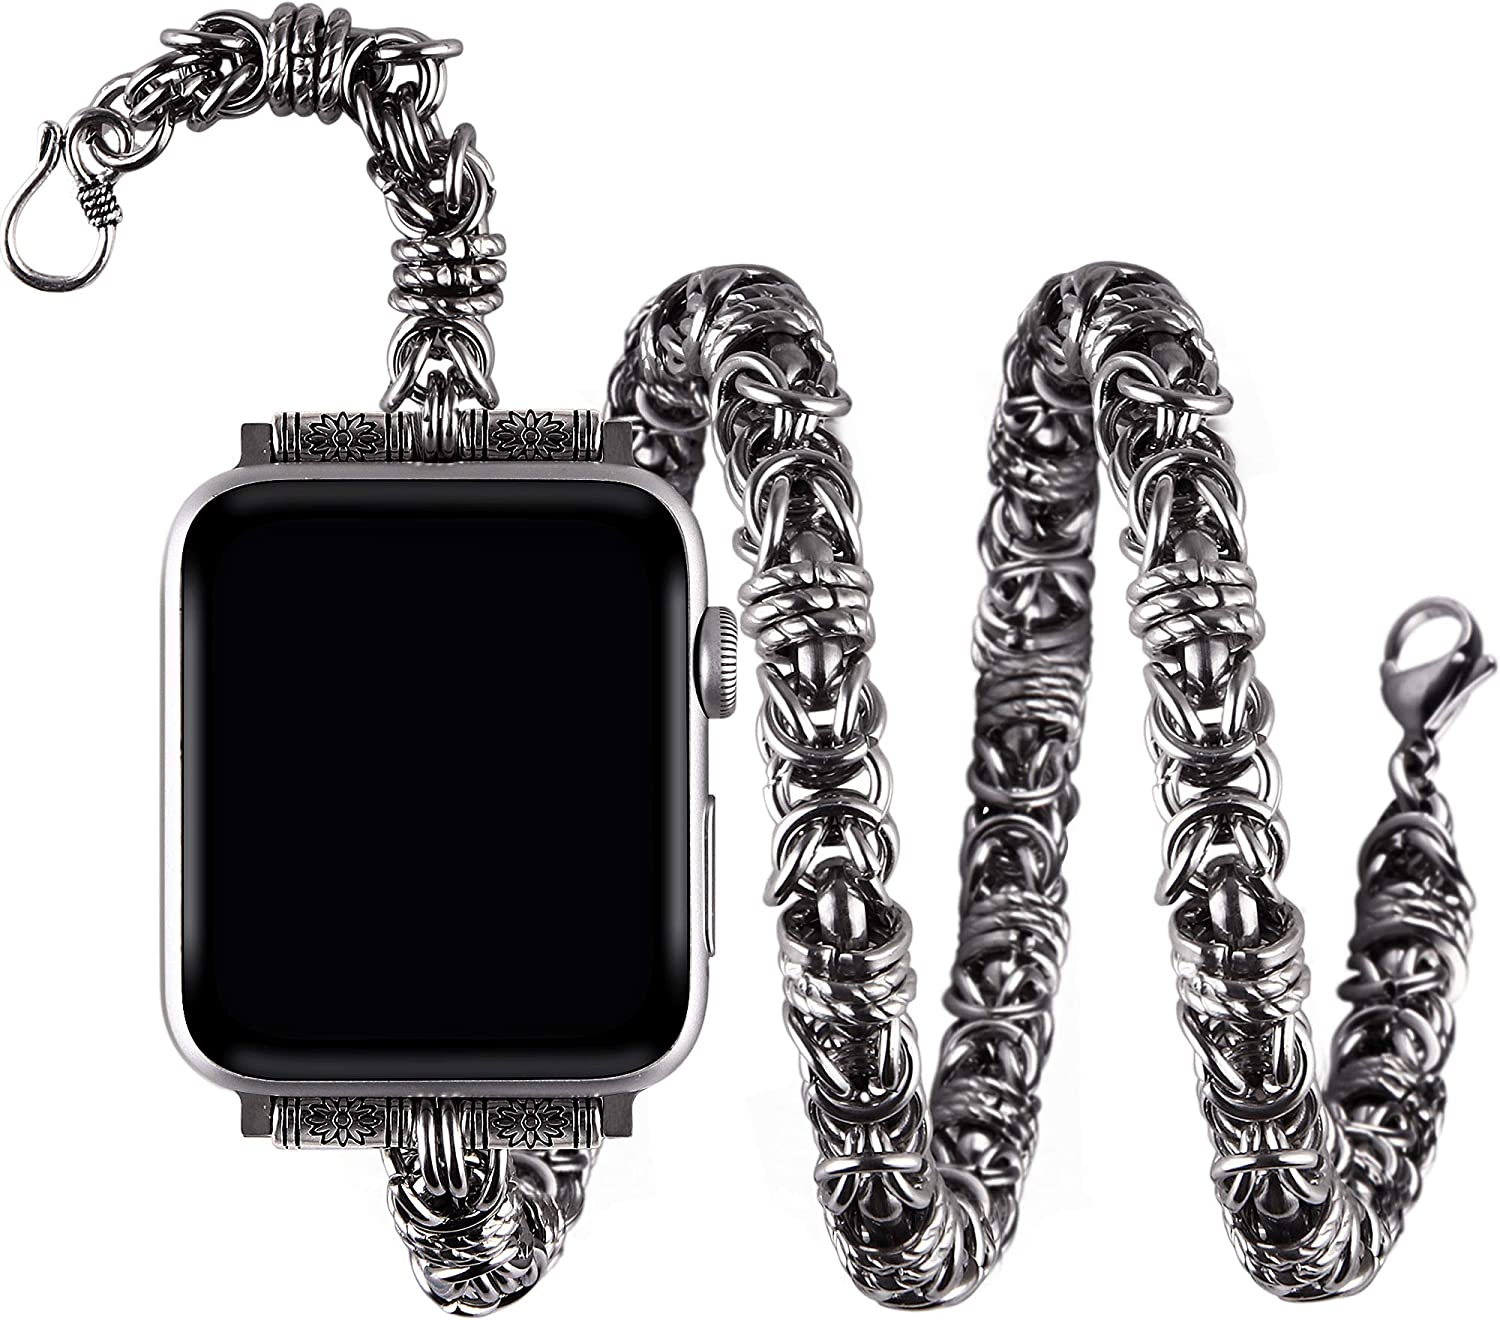 vikoros Stainless Steel Double Wrap Bands Compatible with Apple Watch Band 38mm 40mm 42mm 44mm iWatch SE Series 6 5 4 3 2 1, Cowboy Punk Chain Metal Bracelet Wristband Strap for Mens Women